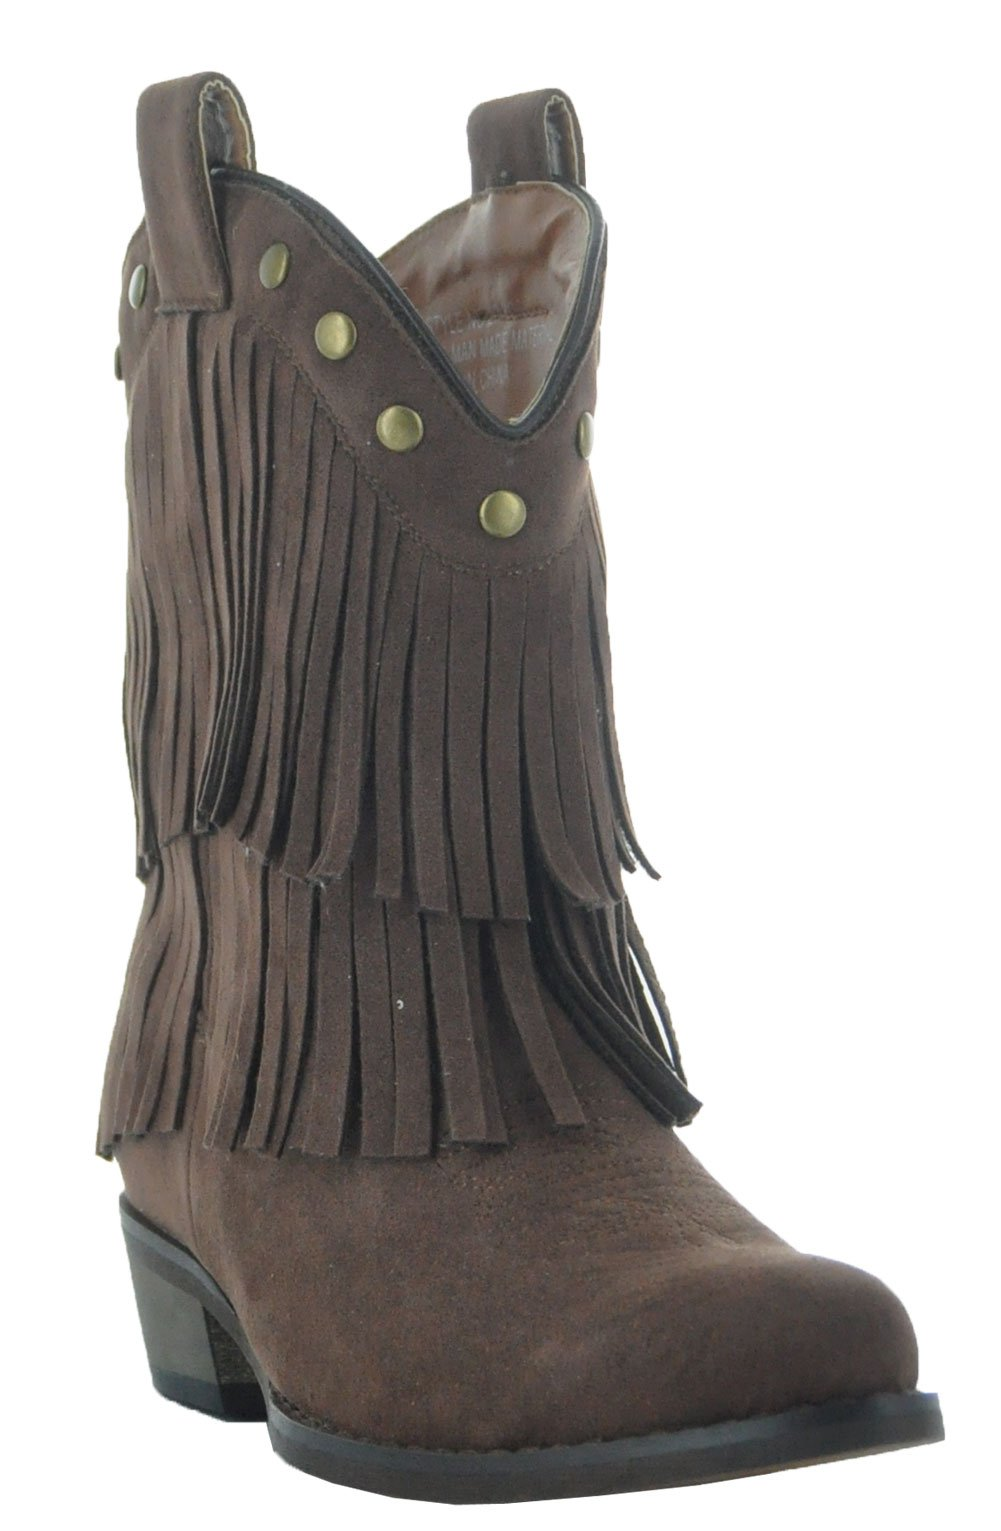 Little Kids Fun Fringe Brown Cowgirl Boots by Country Love Boots (1 Little Kids, Brown) by Country Love Boots (Image #1)